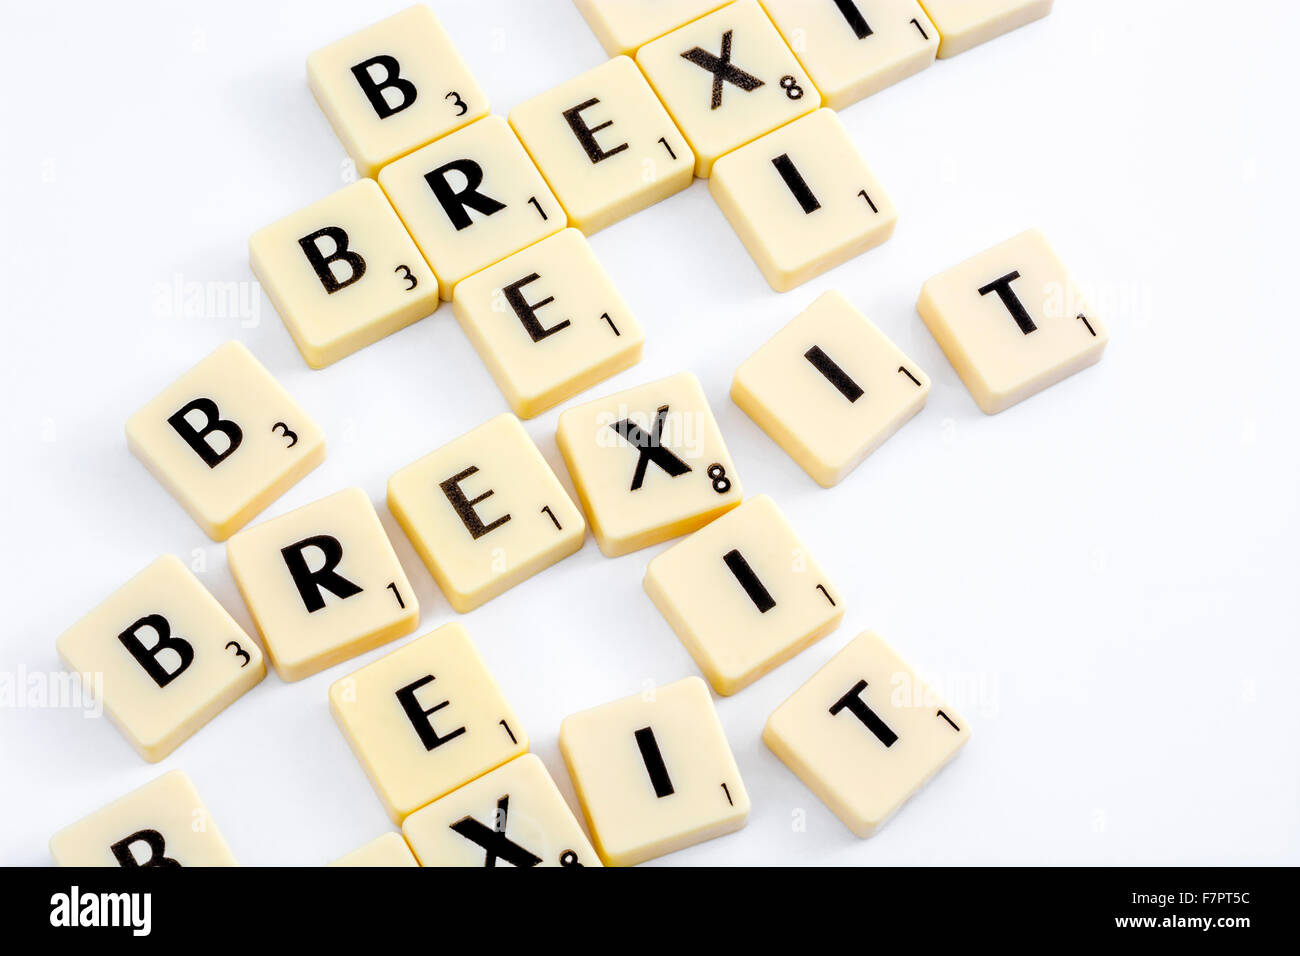 Brexit concept. Scrabble tiles spelling out the word 'Brexit' - the word coined for the UK's possible - Stock Image